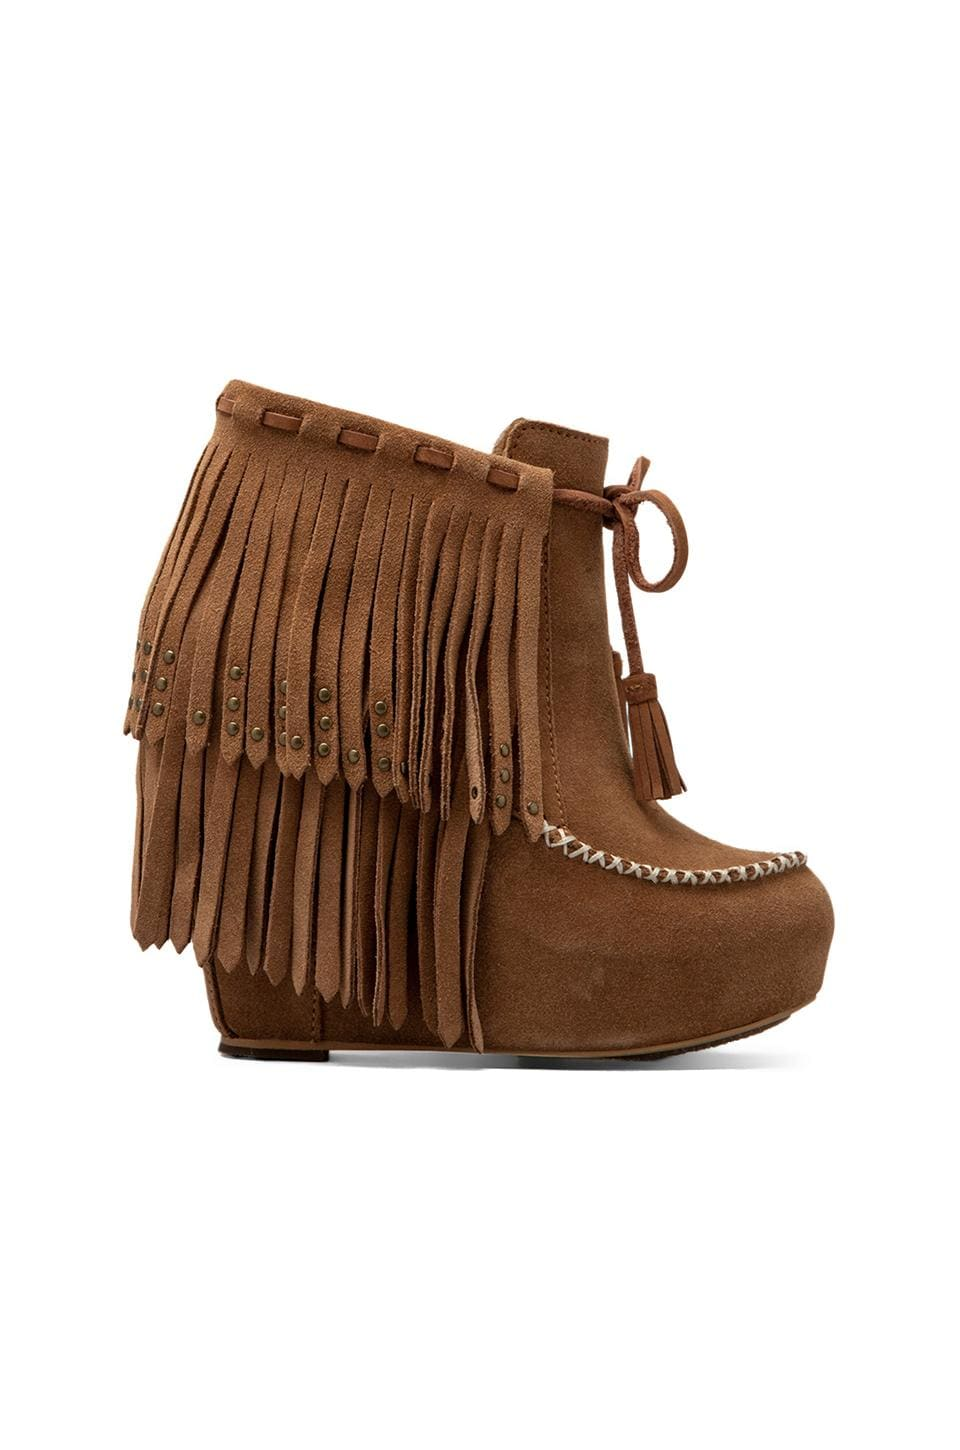 Koolaburra Tasso Bootie in Chestnut